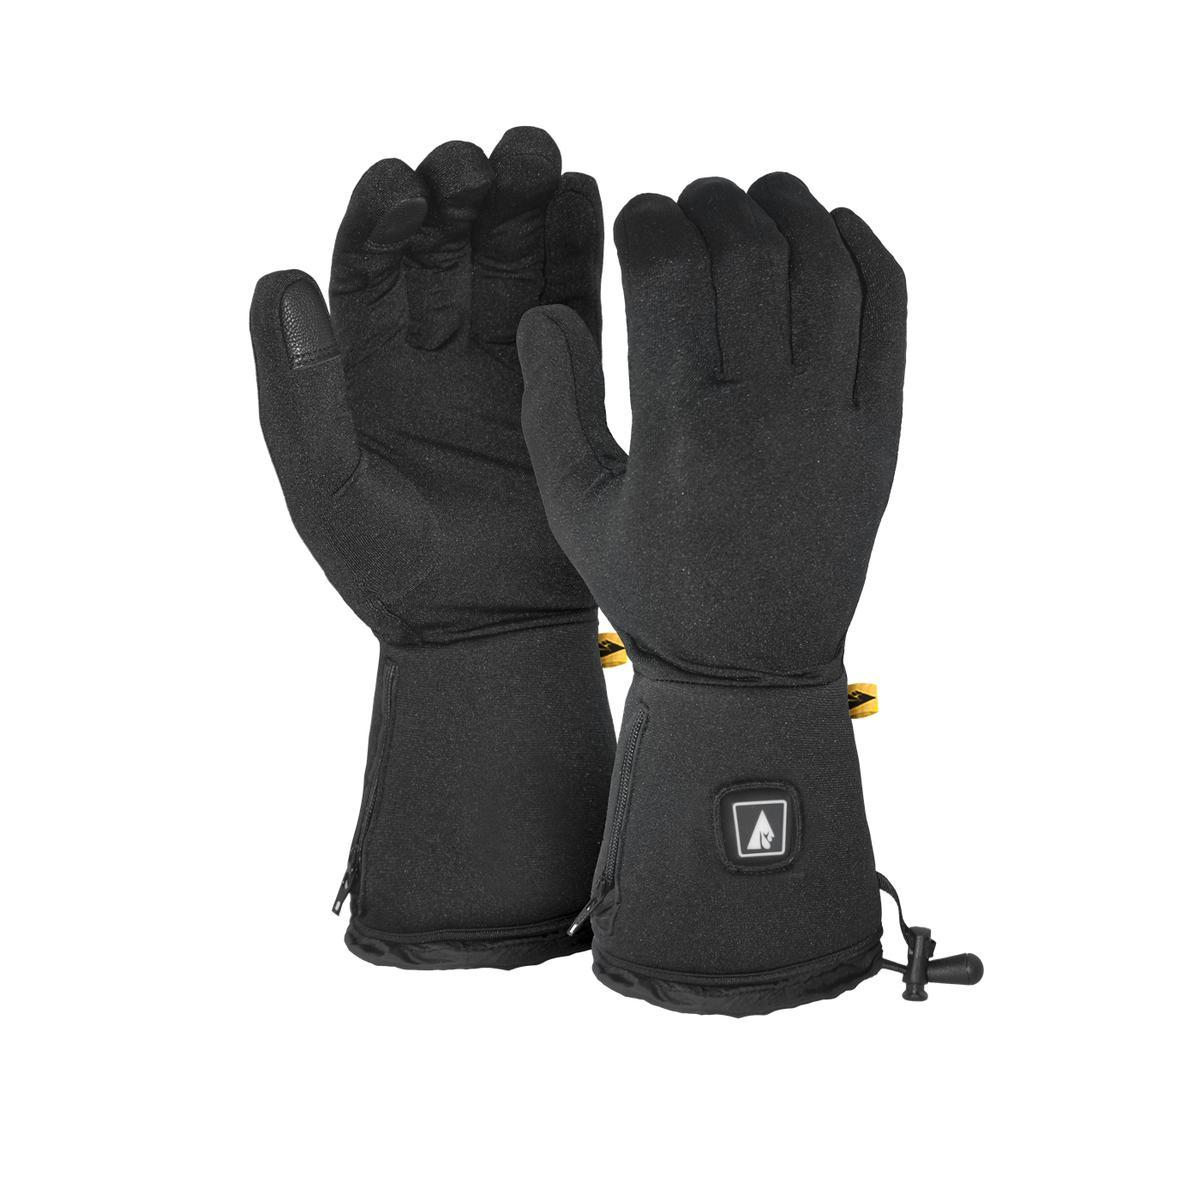 The ActionHeat Battery heated Glove Liners are perfect for all outdoor activities to keep the hands warm. They are made of highly elastic polyester and adhere closely to a hand. The heating element spread on the entire glove will evenly distribute the hea